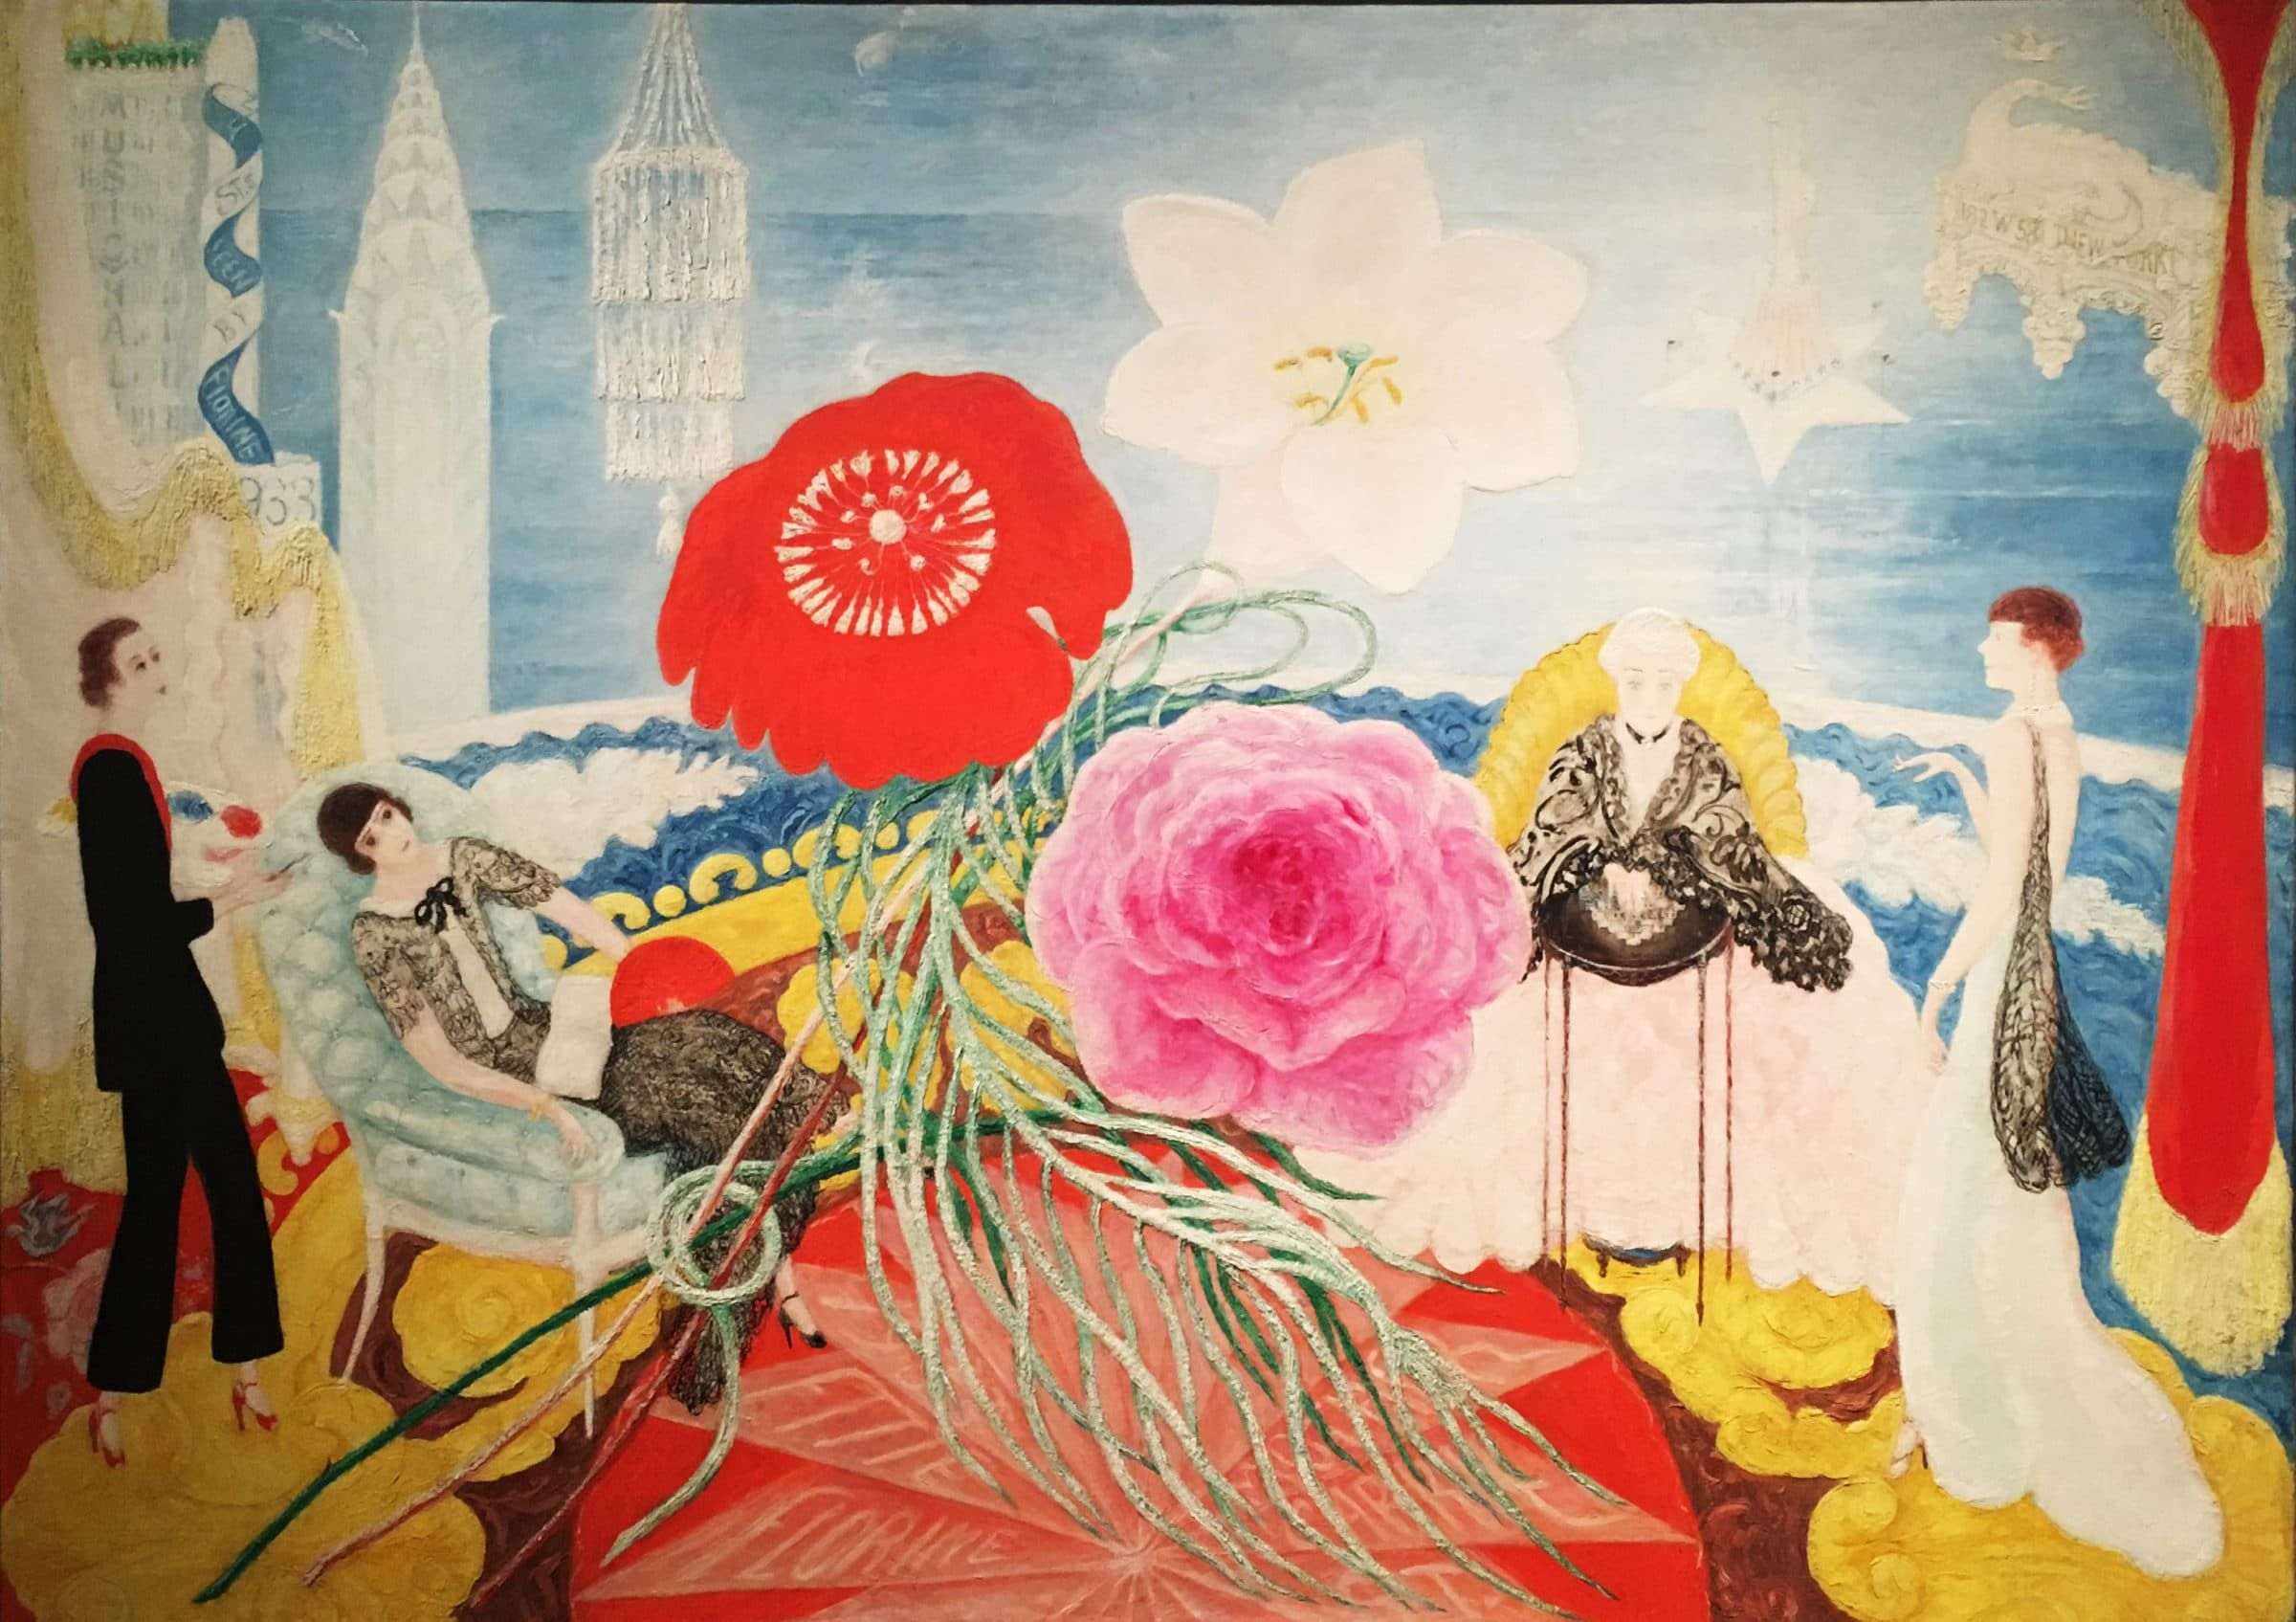 Spring Sale at Bendel/'s  by Florine Stettheimer   Giclee Canvas Print Repro